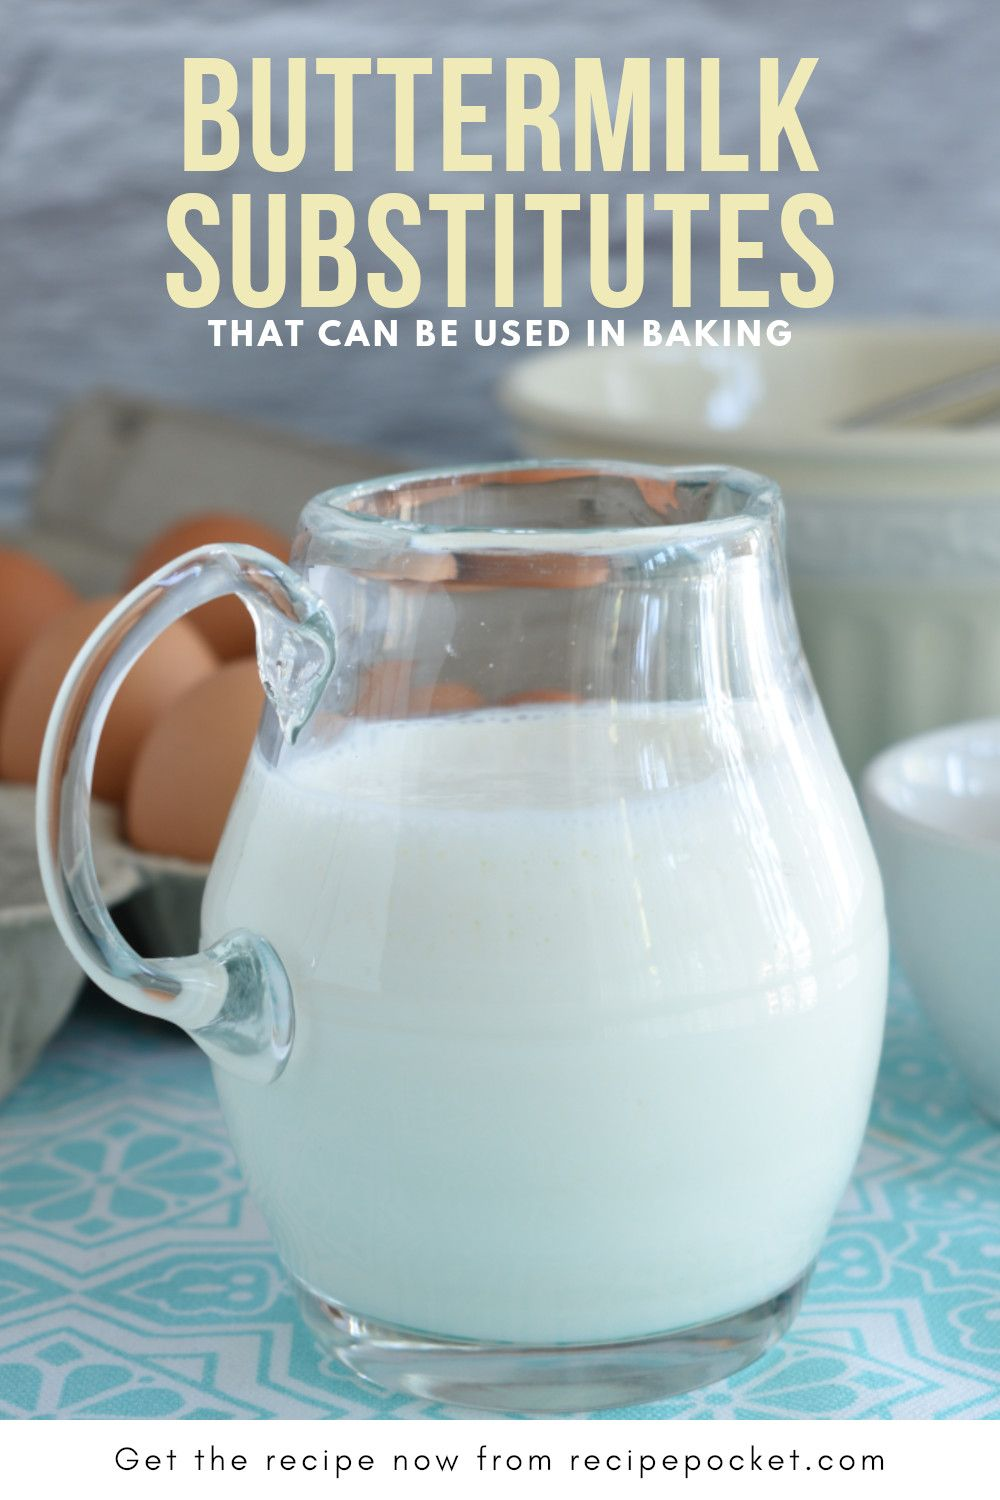 Make A Substitute For Buttermilk In Baking 6 Easy Buttermilk Substitutes In 2020 Buttermilk Substitute Buttermilk Food Substitutions